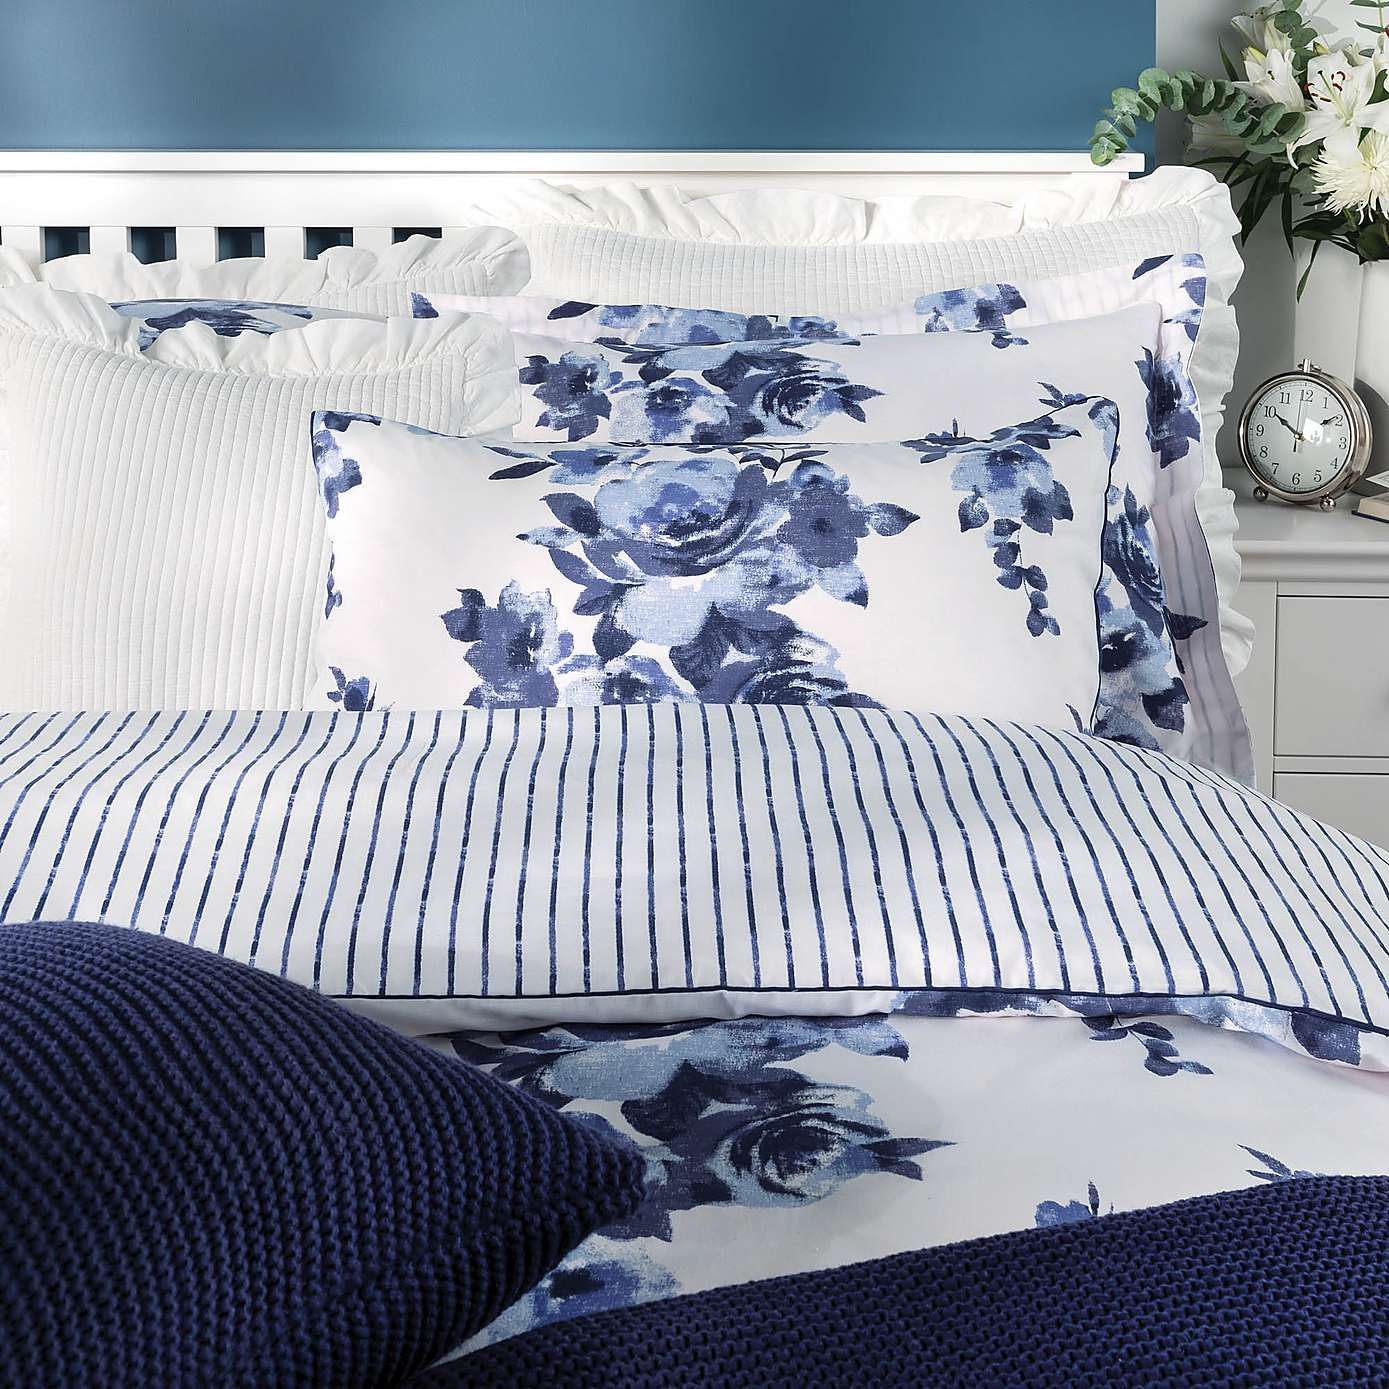 Saria Floral Blue Bed Linen Collection Dunelm Blue Linen Bedding Blue Bedding Blue Bedding Sets